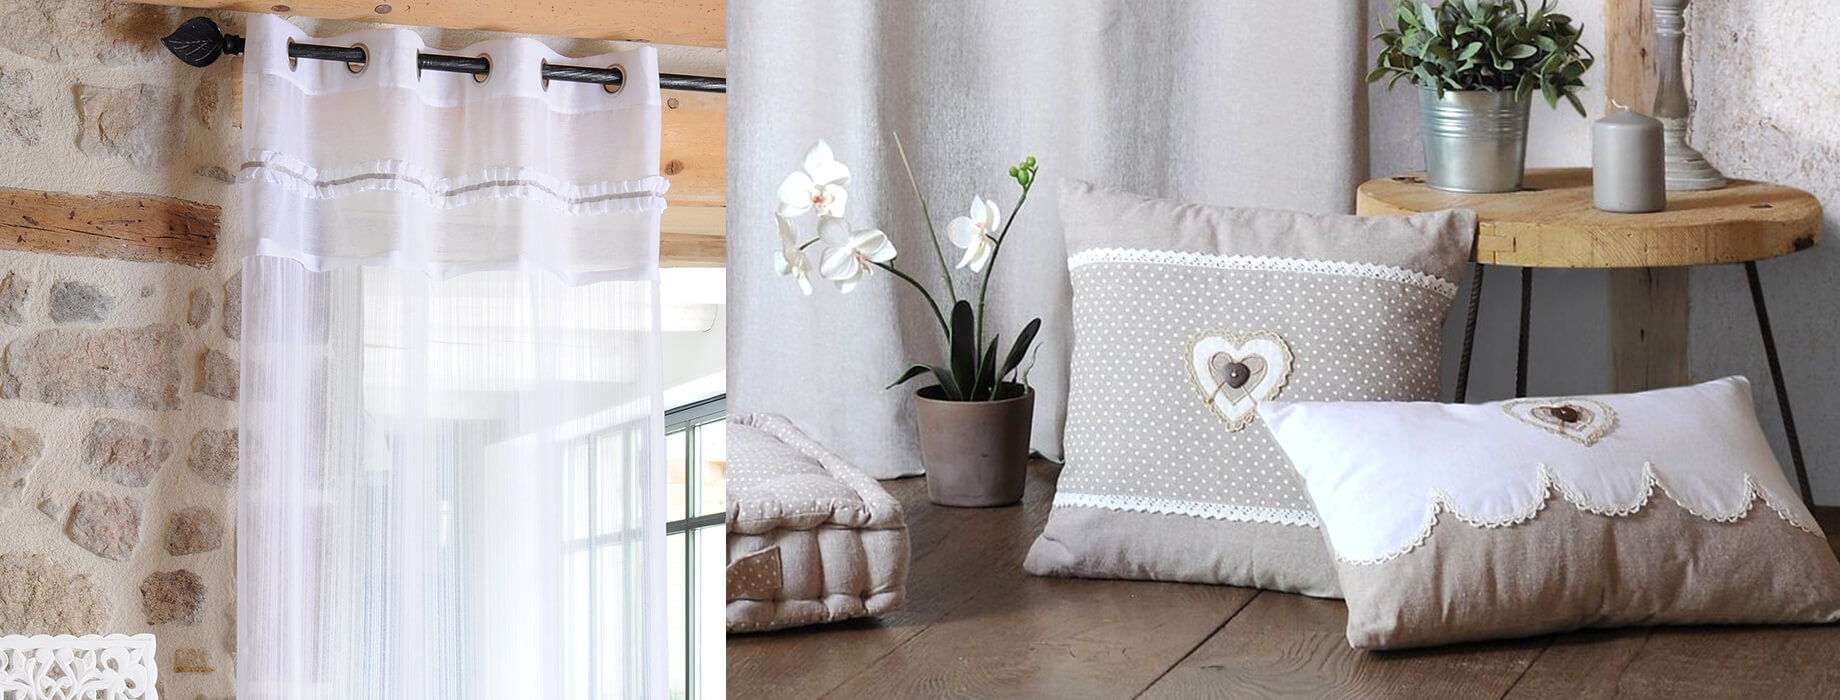 Biancheria per la casa country chic